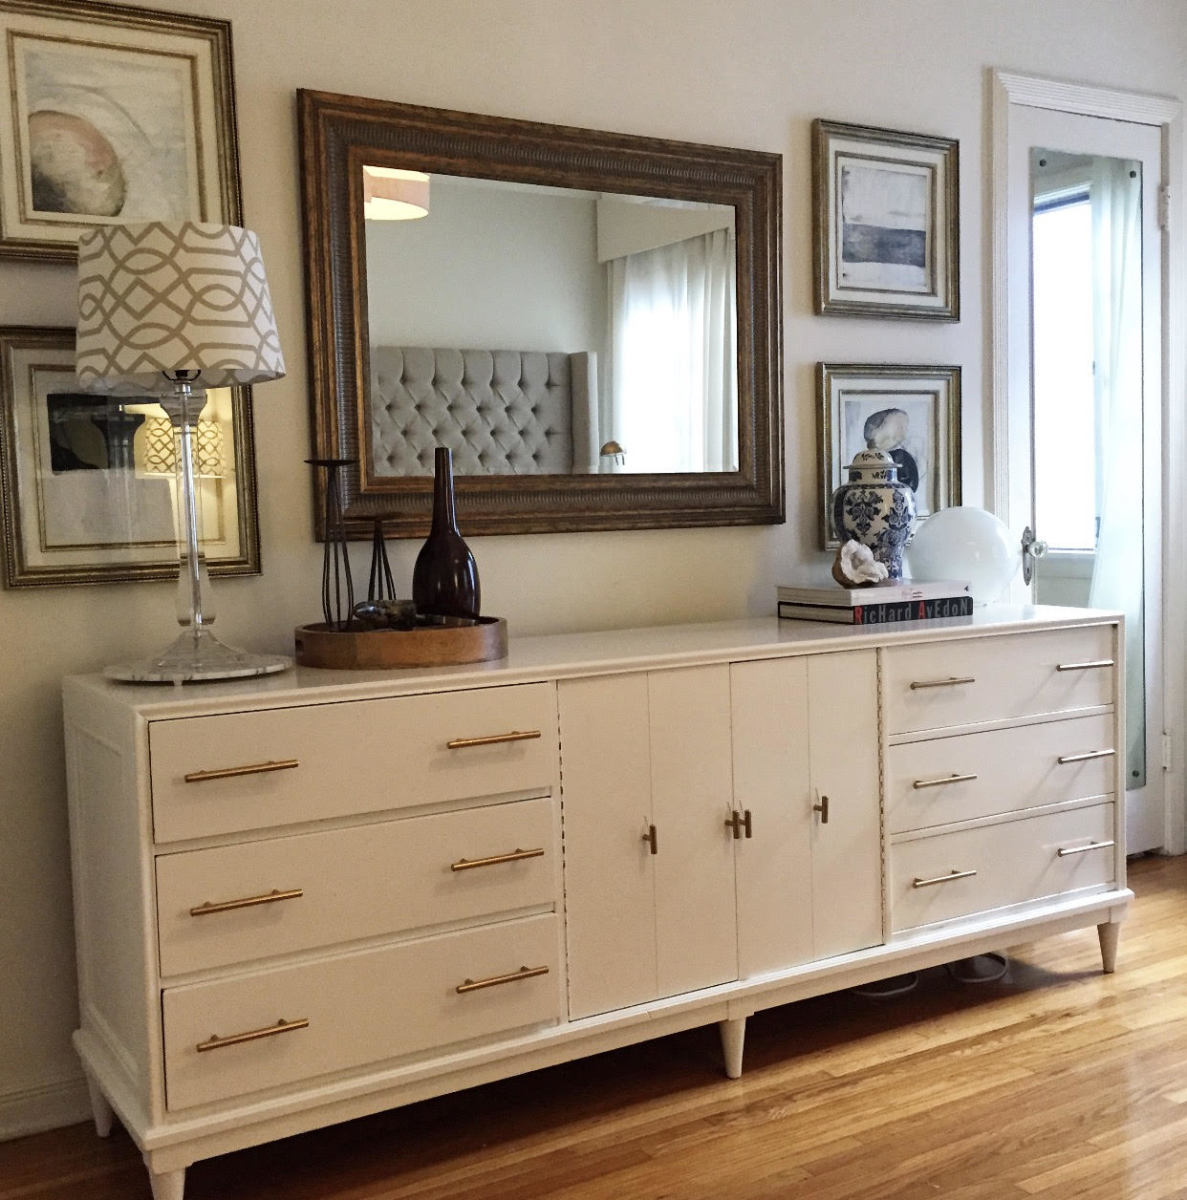 Shana Wardle's dresser with a fresh coat of paint and updated hardware